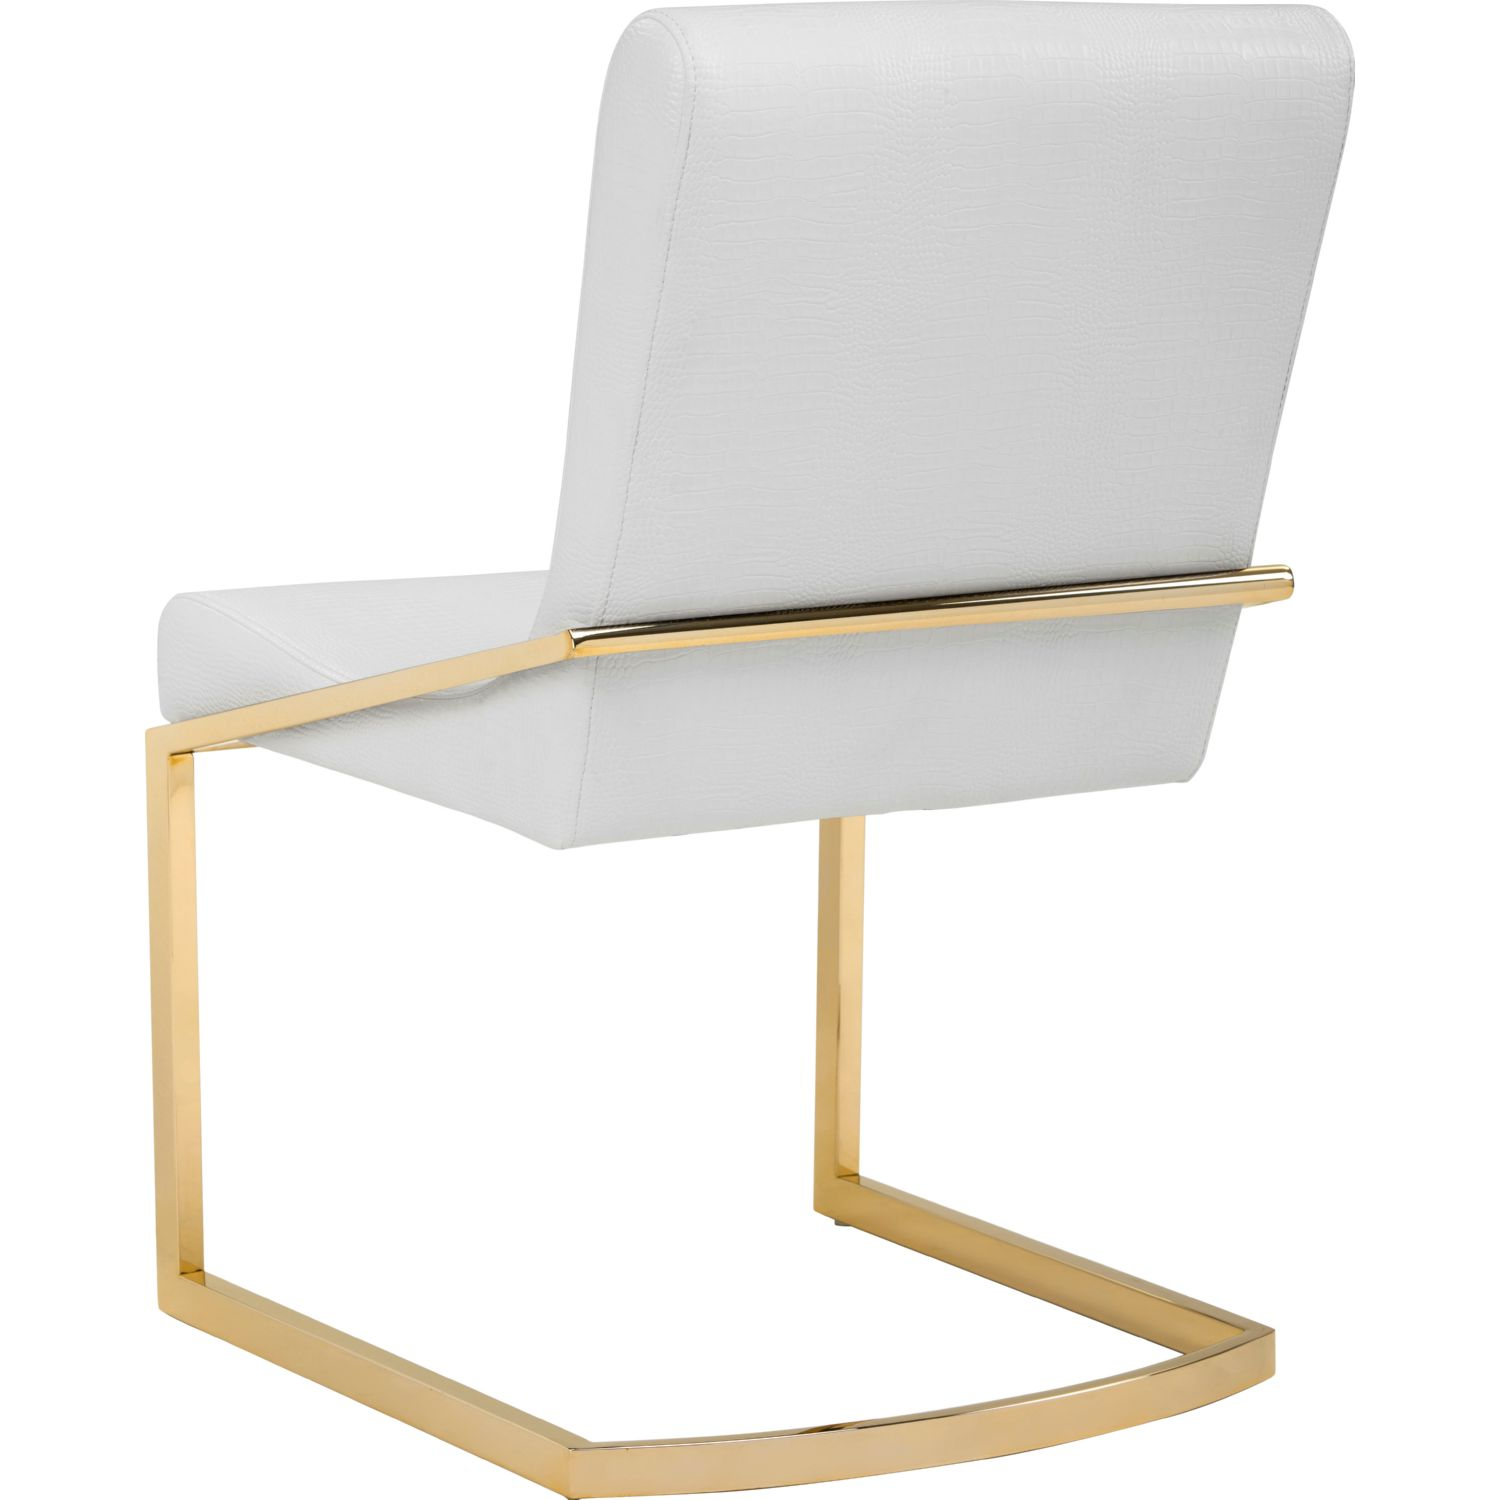 Beau Sunpan Marcelle Dining Chair In White Croc Leatherette On Yellow Gold  Stainless (Set Of 2)